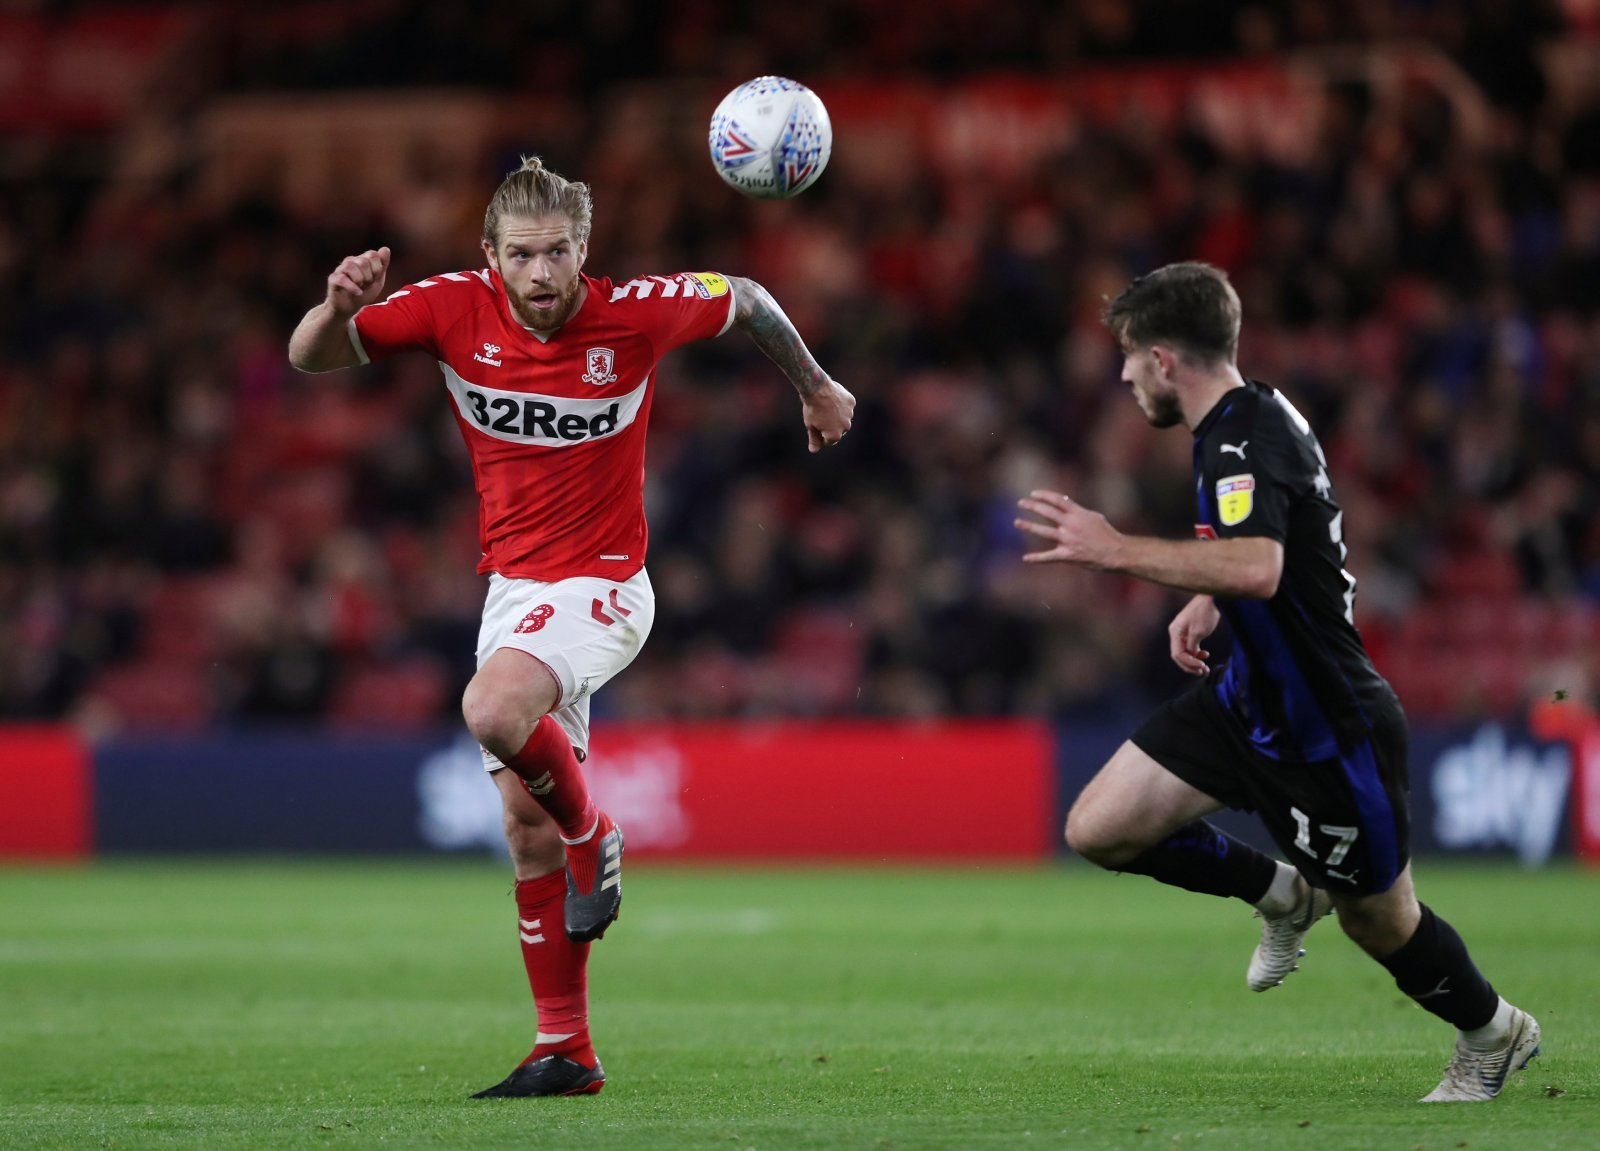 Middlesbrough: Clayton's plea for fans' backing should be listened to, unless it all goes wrong again